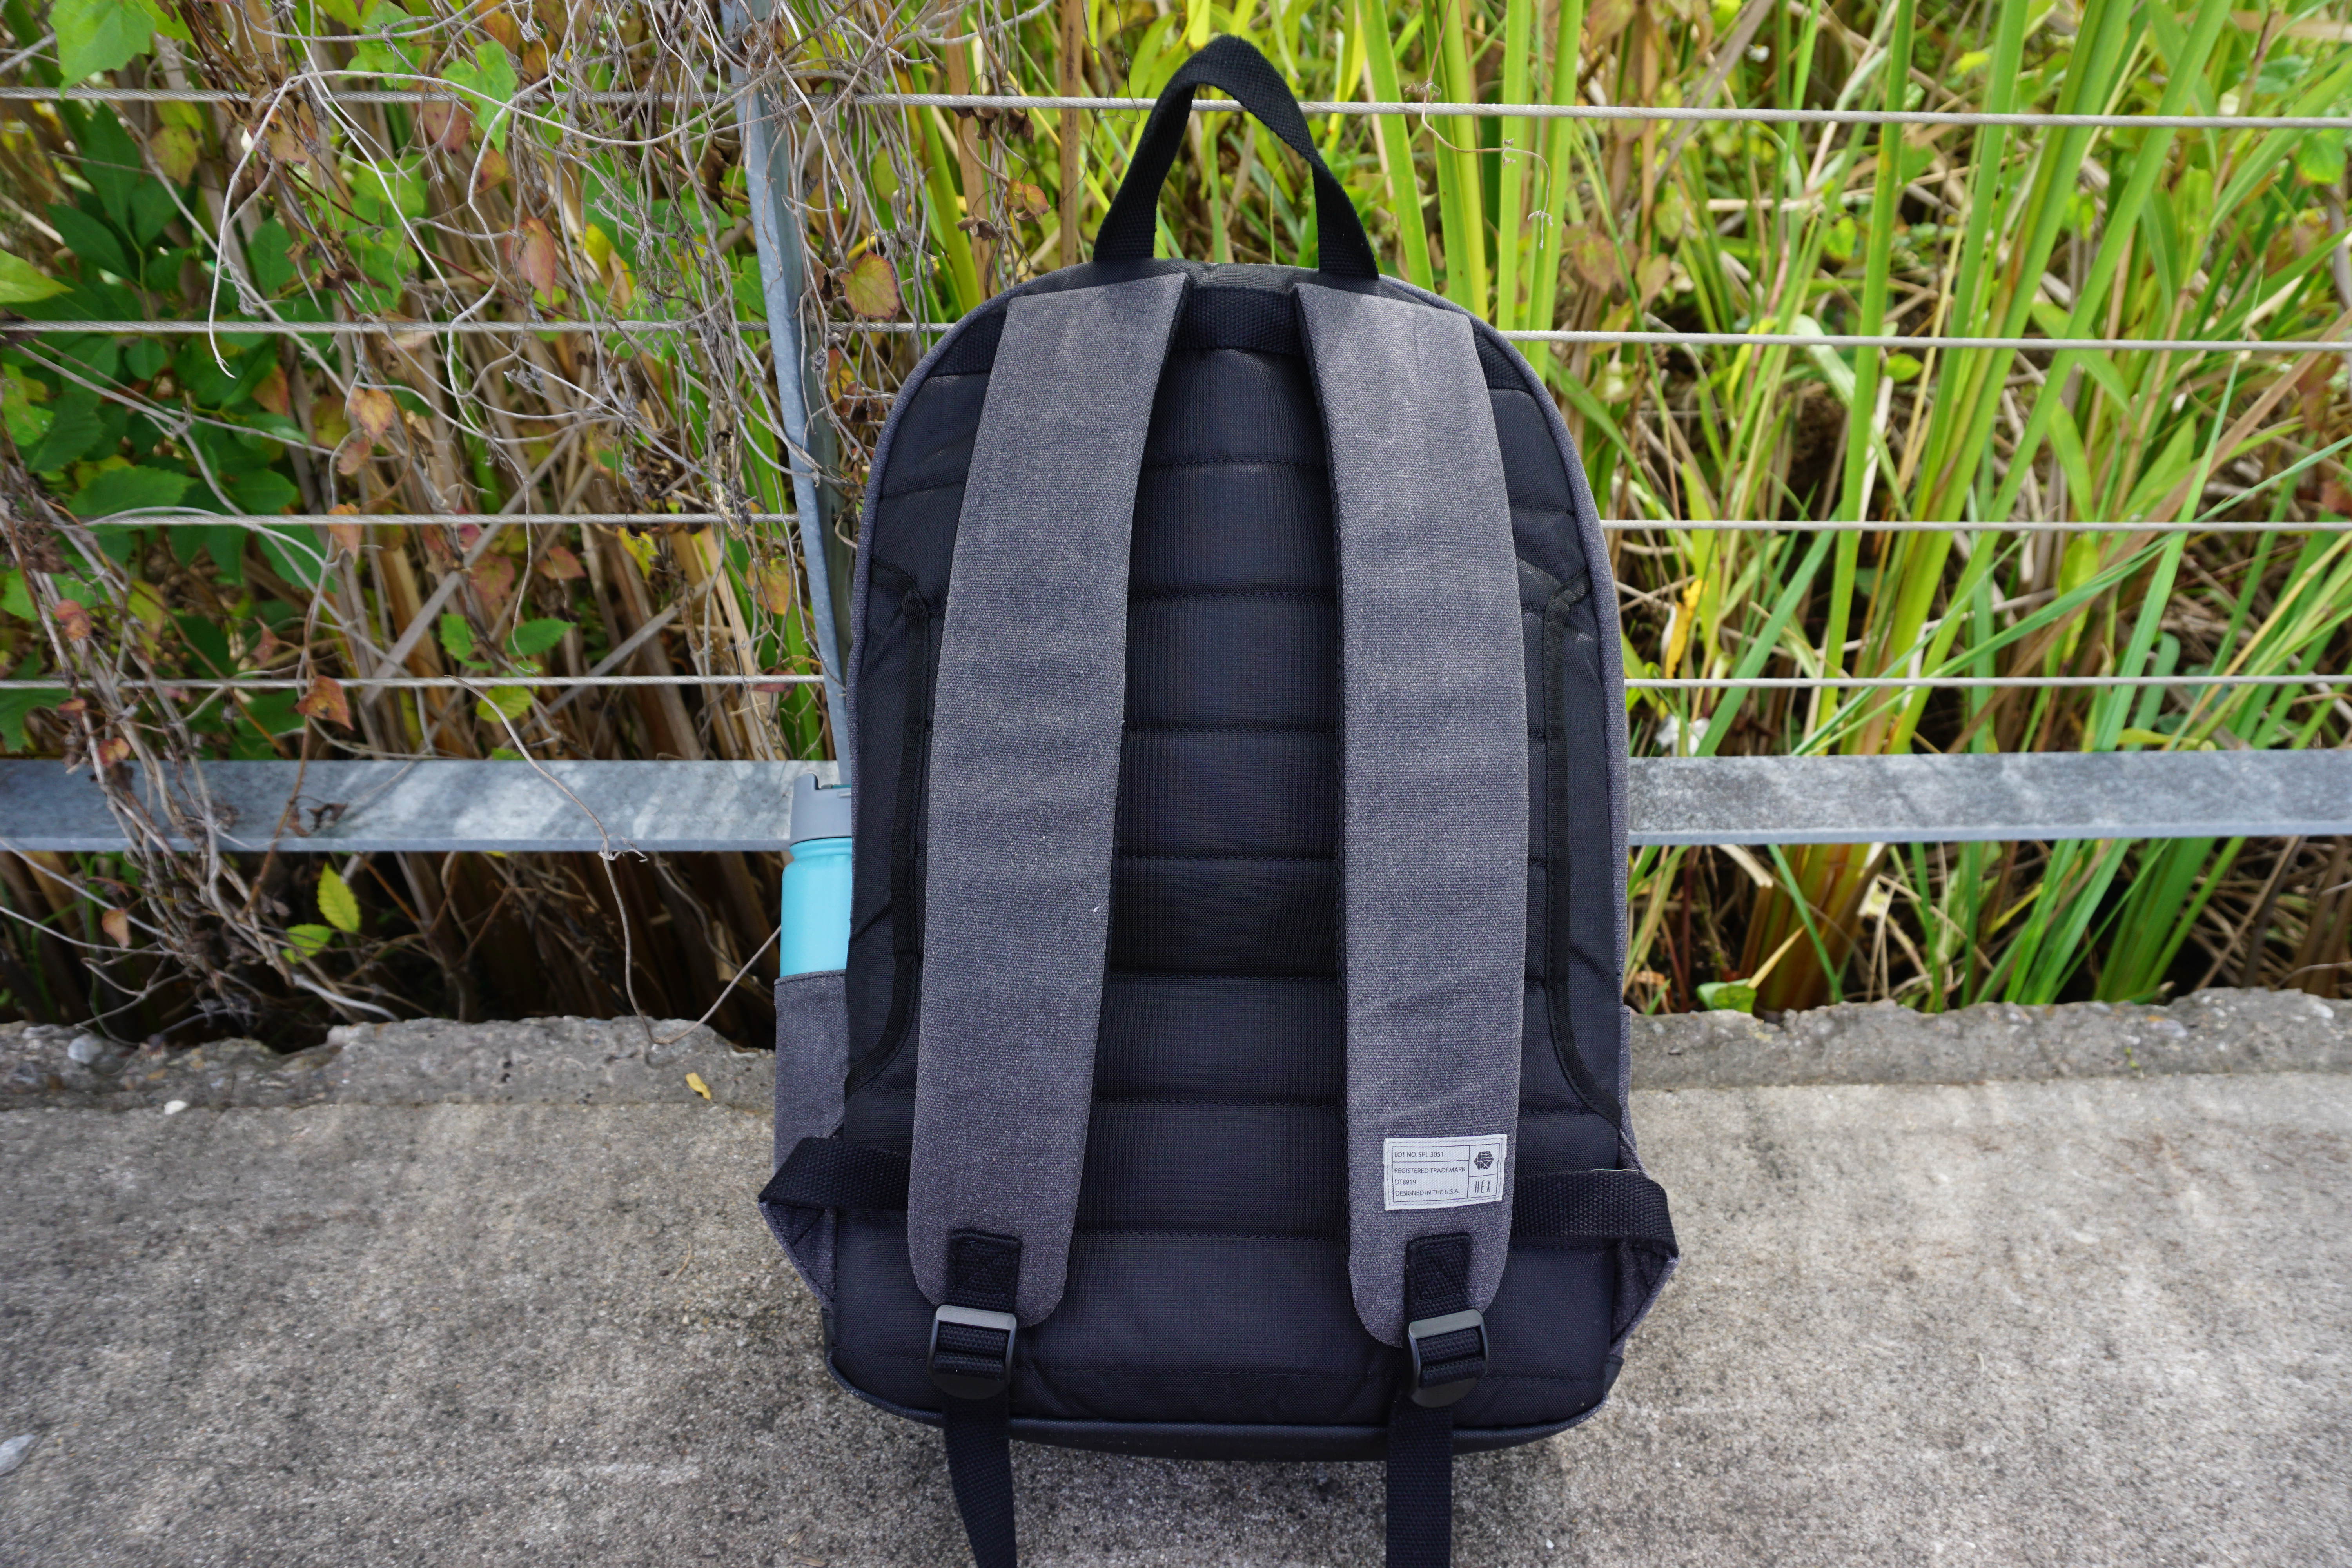 Hex brand supply signal backpack review back padding straps view luggage handle passthrough section